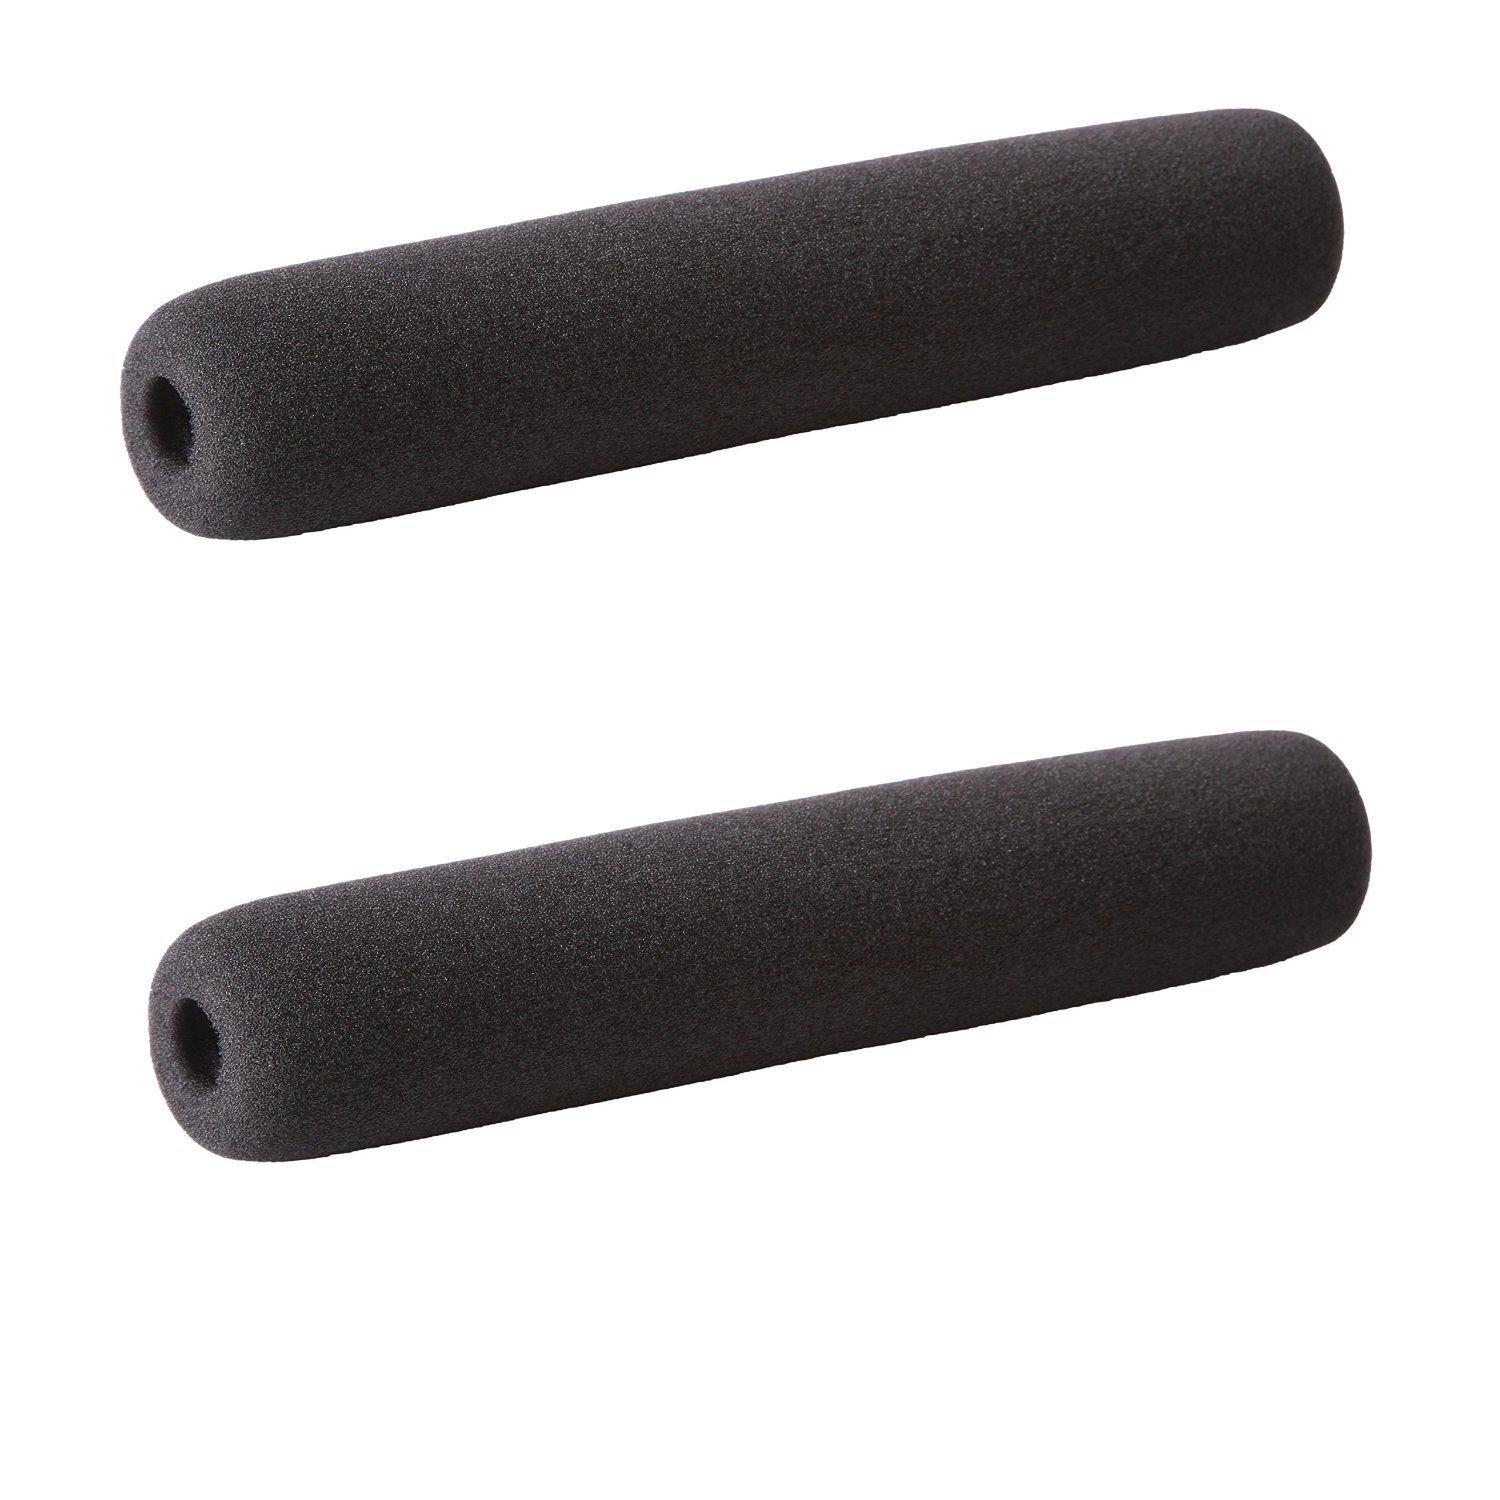 Movo F24 Foam Windscreen for Shotgun Microphones for up 24cm including the AKG CK 98, 460, SE300, Audio-Technica AT8035, Azden SGM-2X & Shure VP89 (2 PACK)